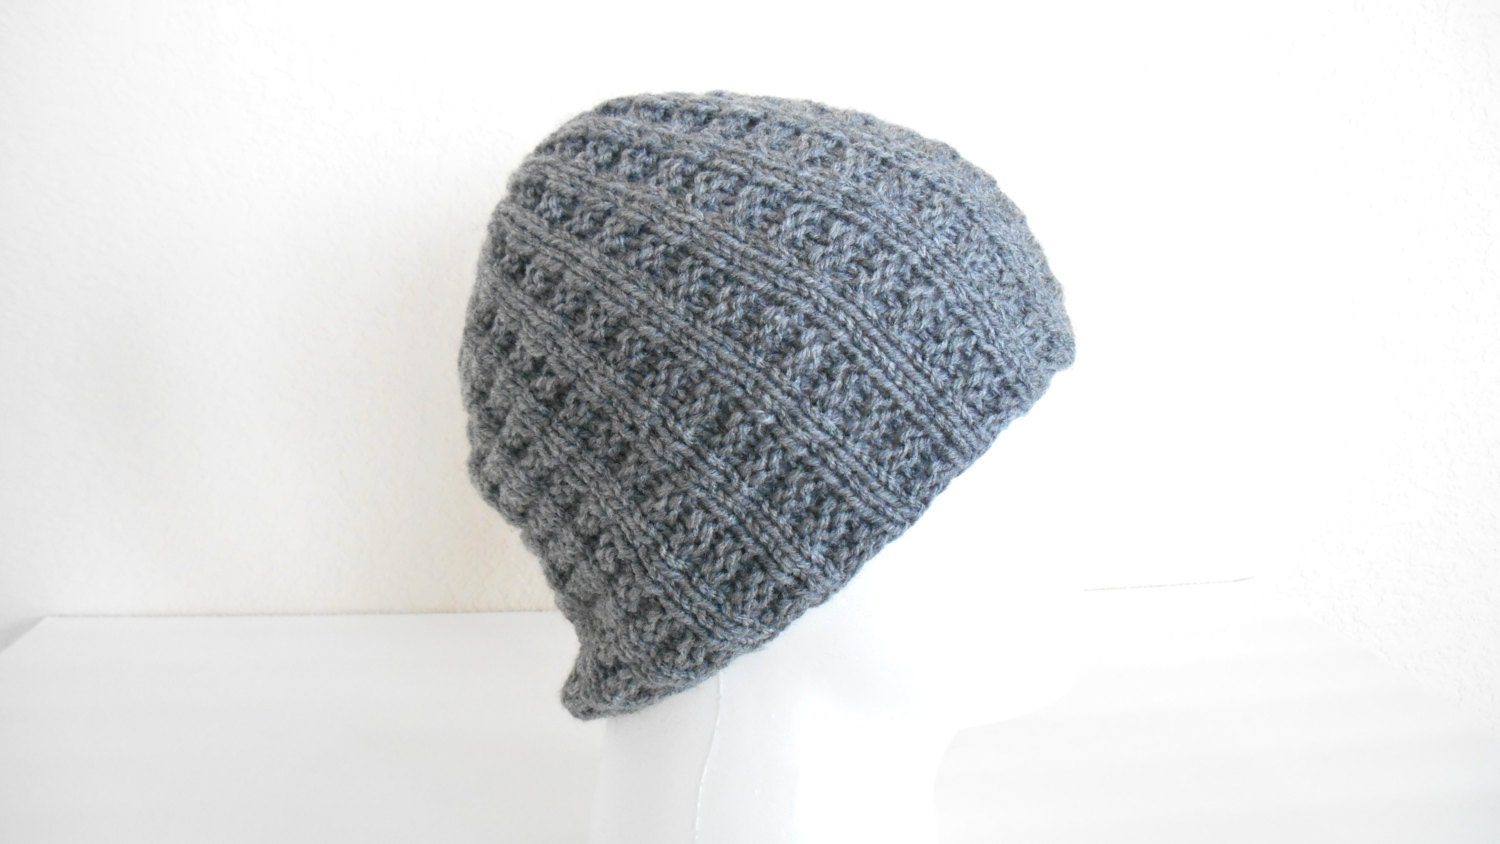 Large Knit Men s Hat - Vegan Knit Beanie - Non Wool Men s Knit Hat - Gray 043ff96d2e0